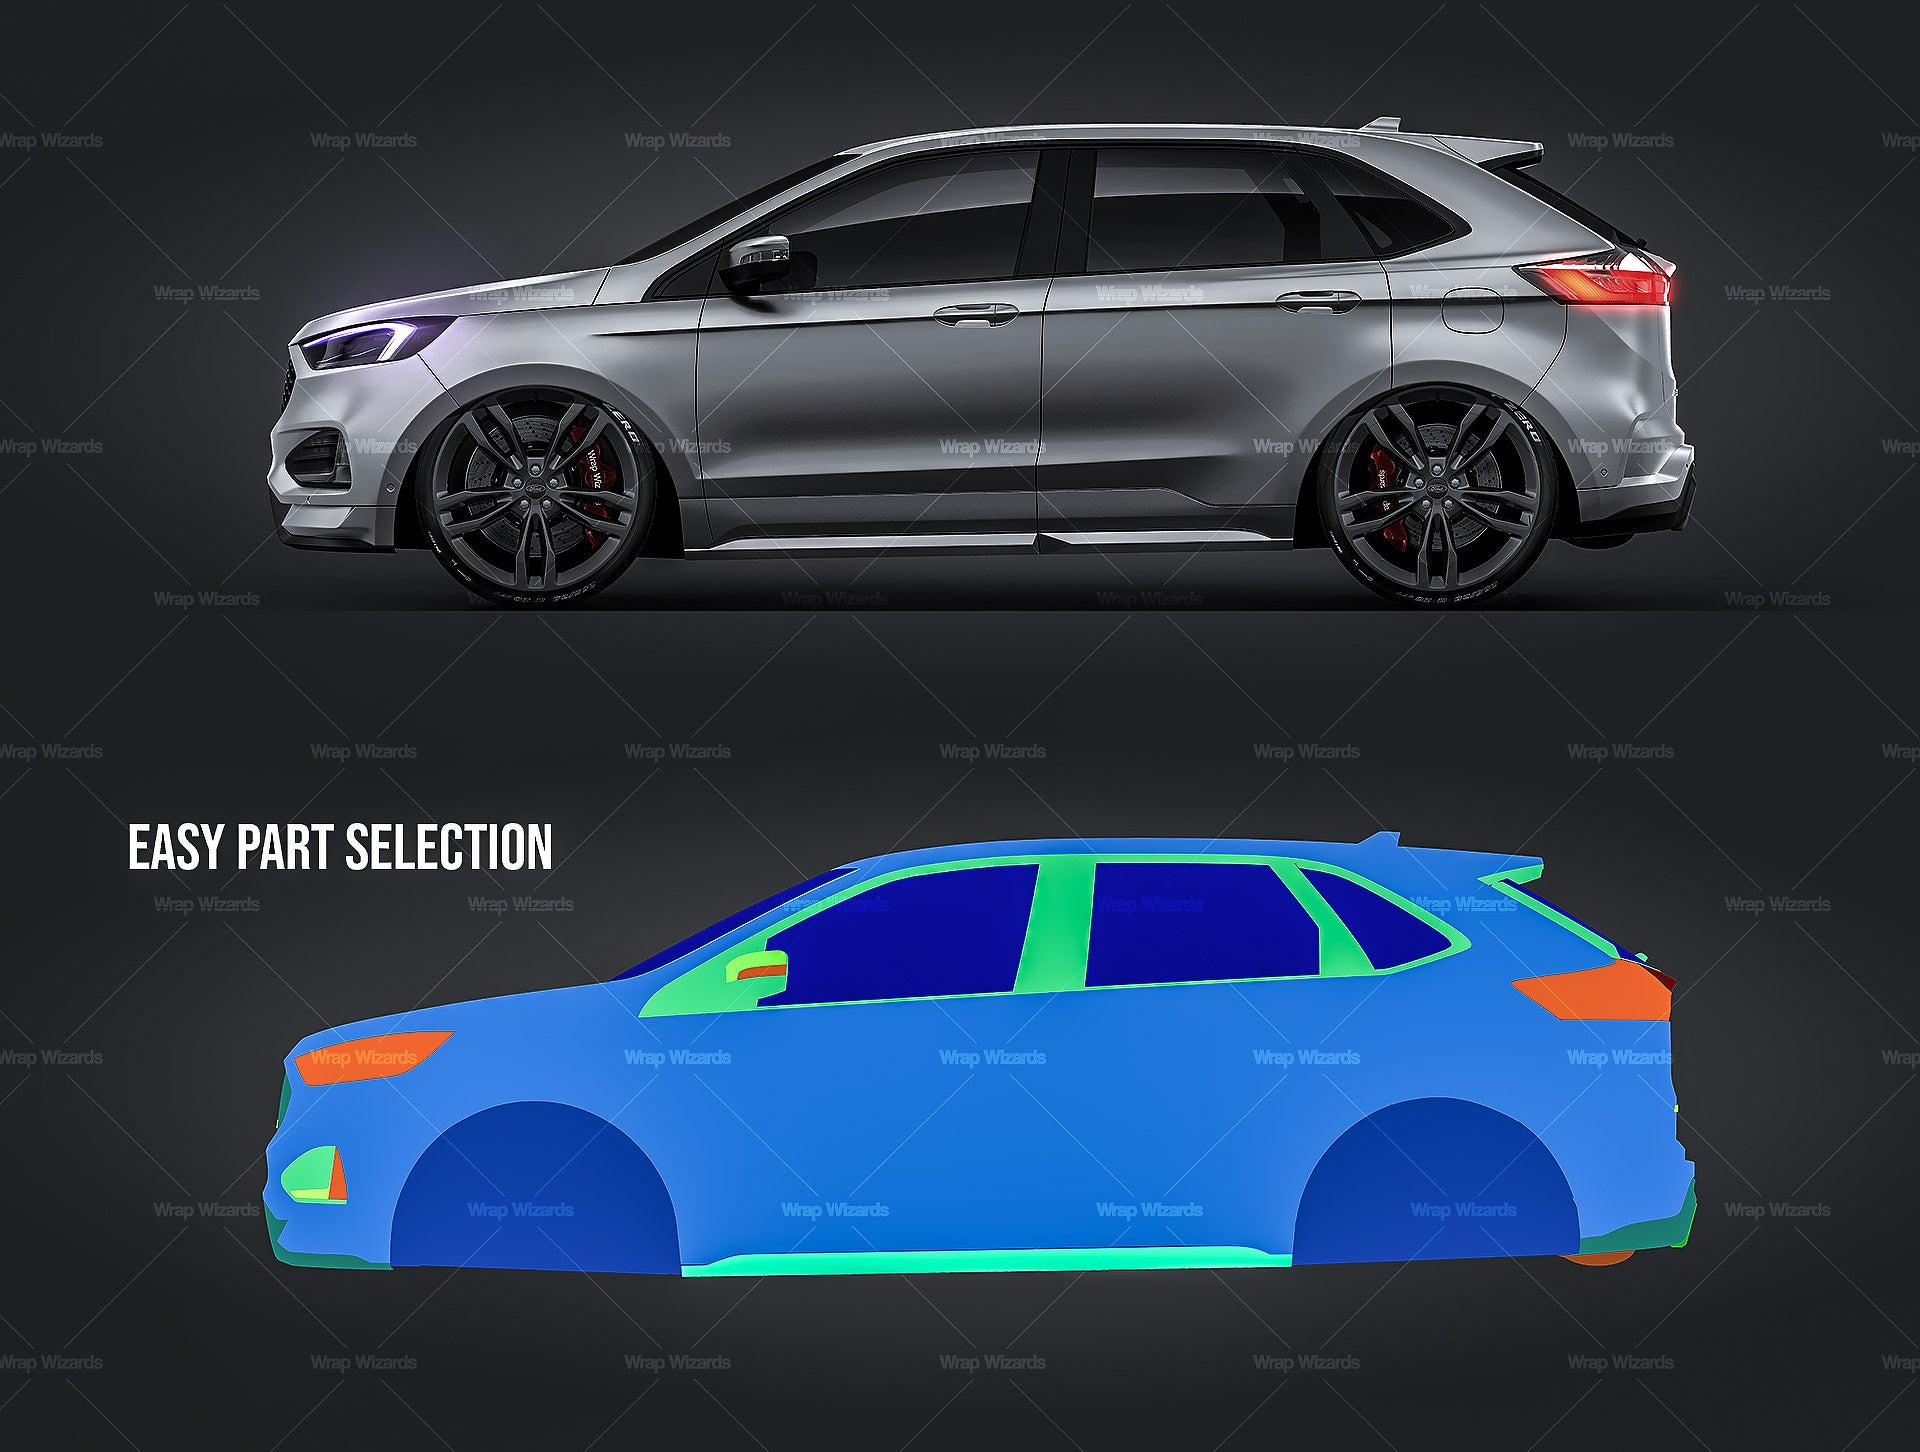 Ford Edge ST 2019 satin matt finish - all sides Car Mockup Template.psd